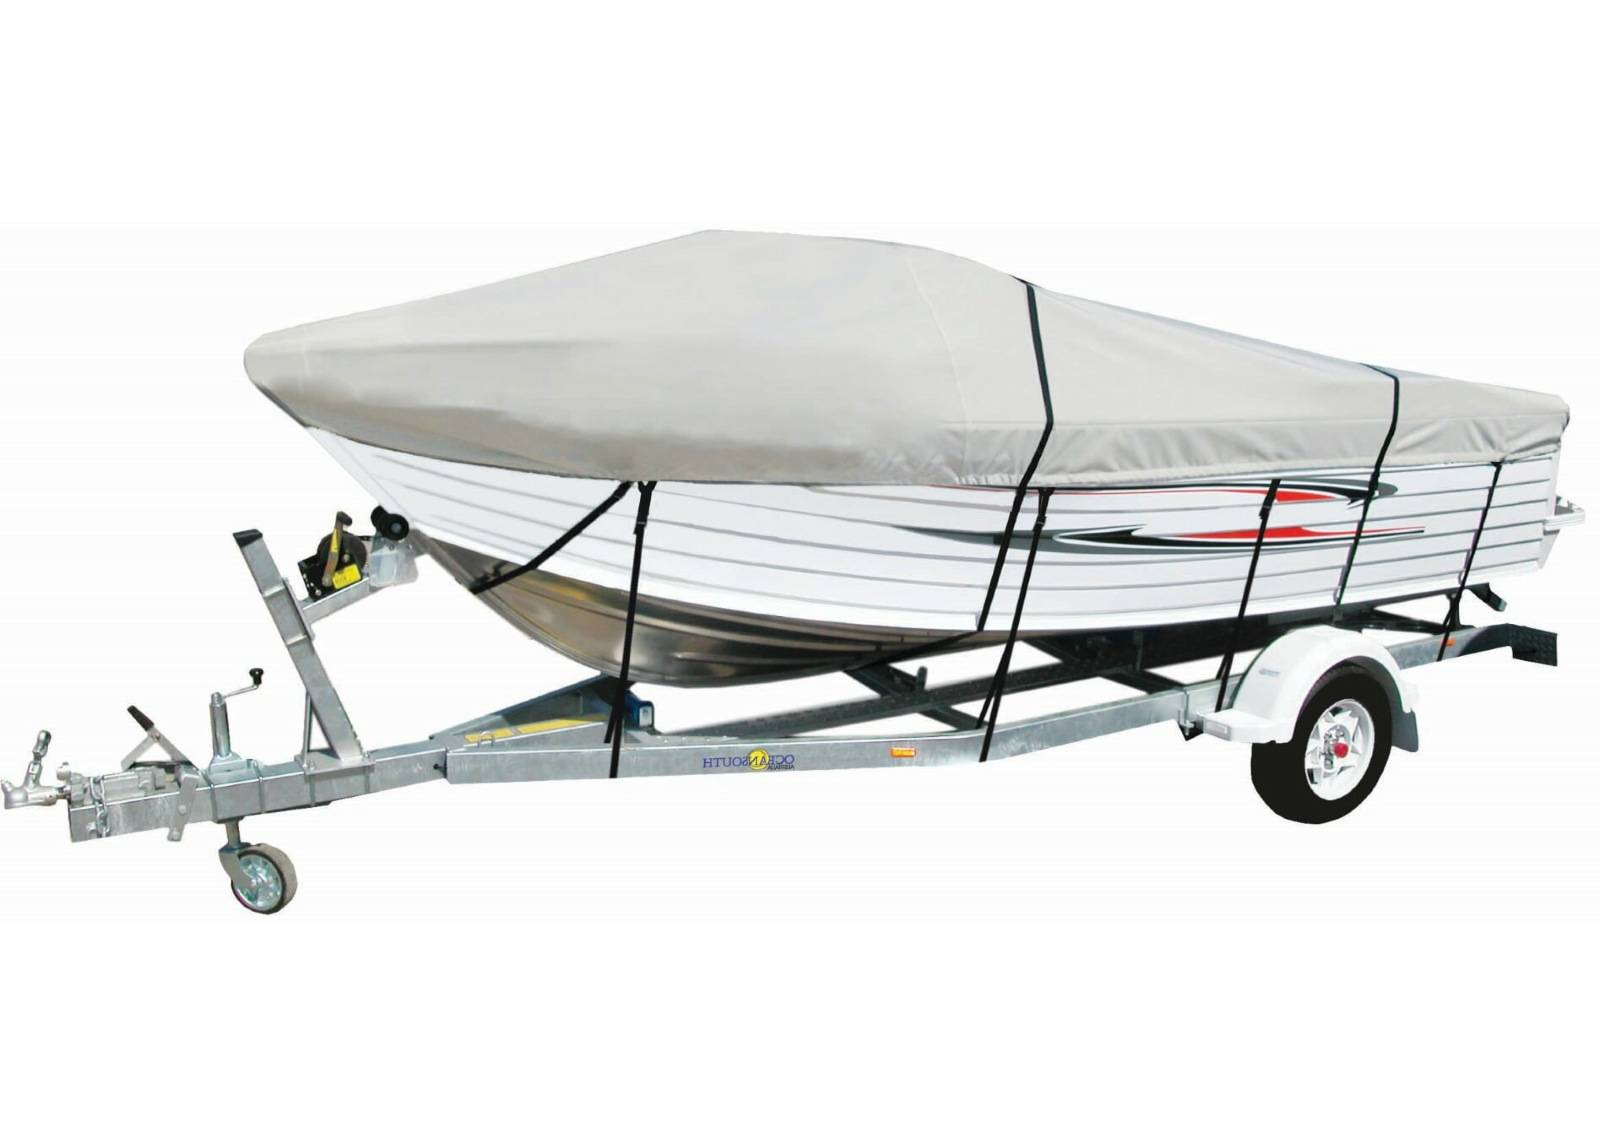 OceanSouth Venepeite Runabout tyyppisille veneille 4.5-4.7 m